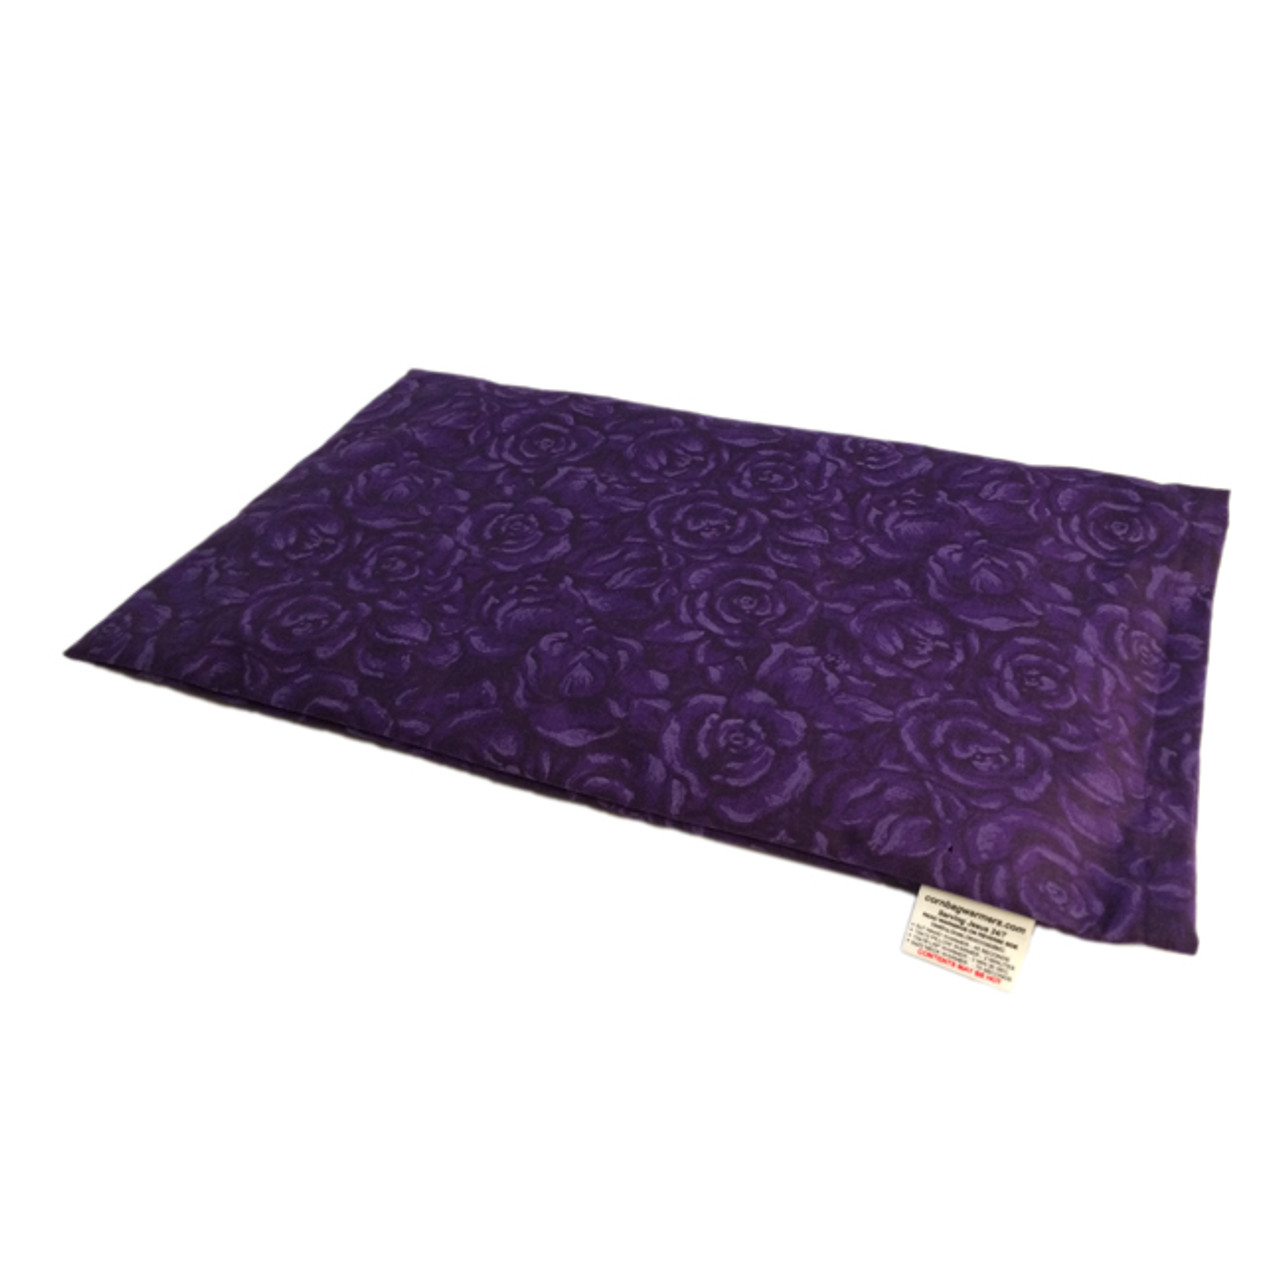 Lap Warmer Microwave Corn Heating Pad - Deep Purple Roses